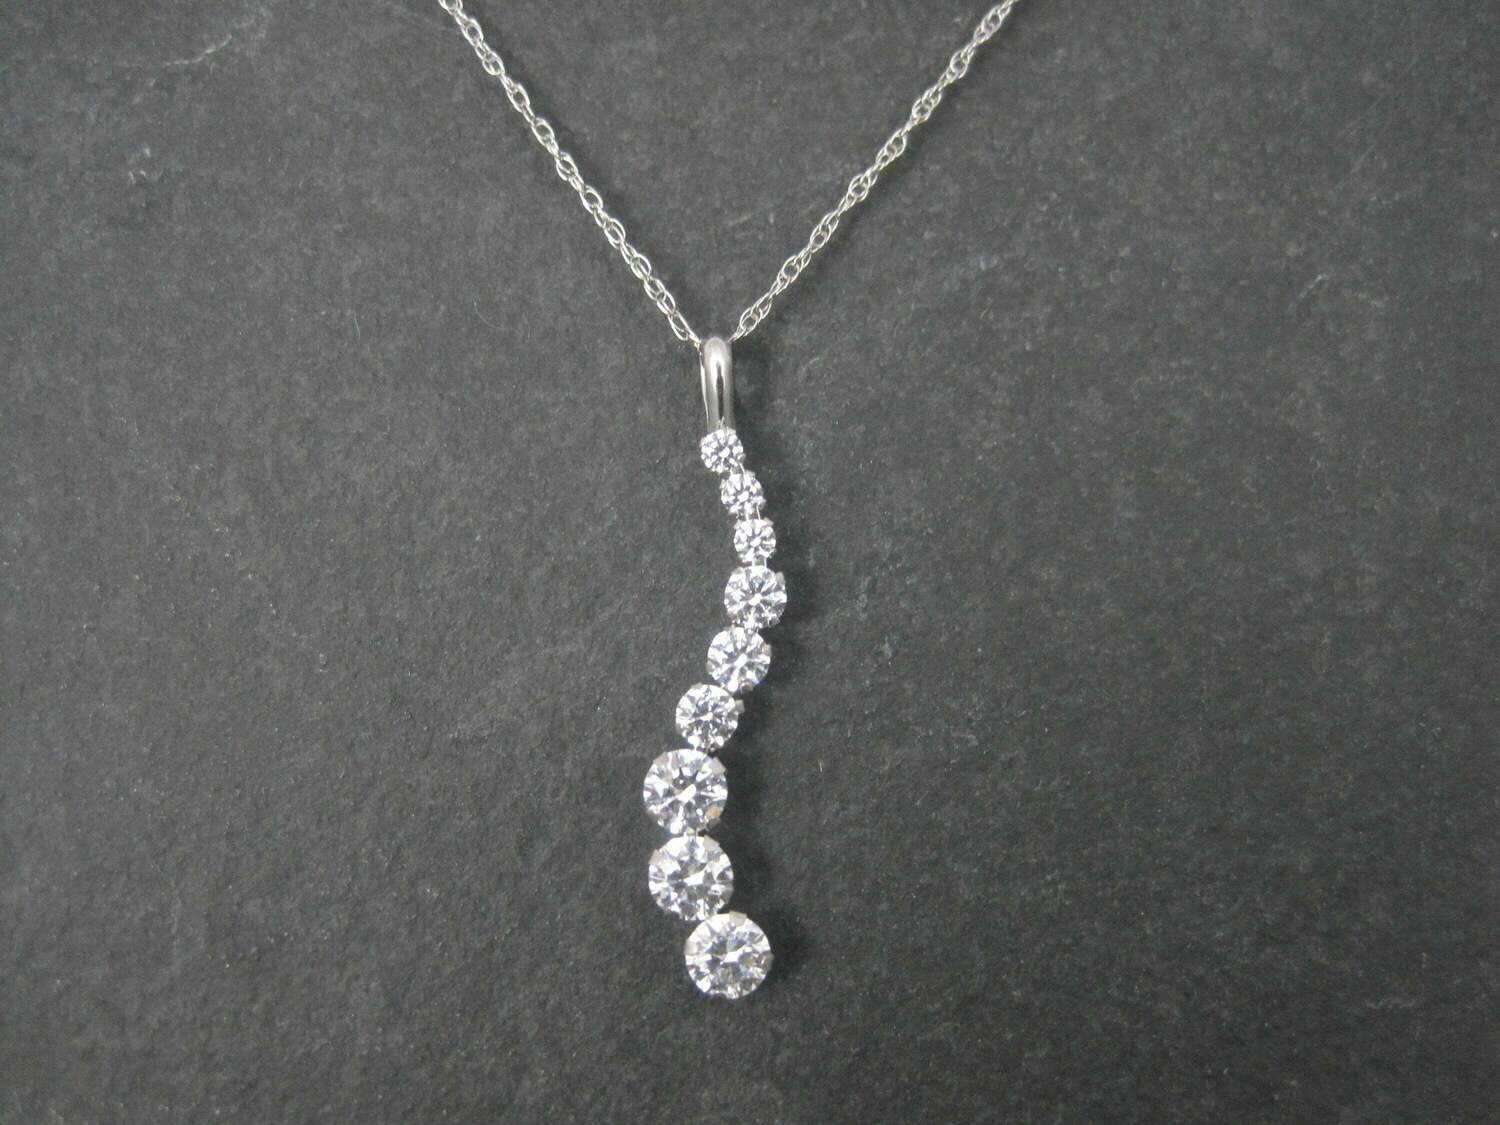 Dainty Vintage 14K White Gold Journey Pendant Necklace